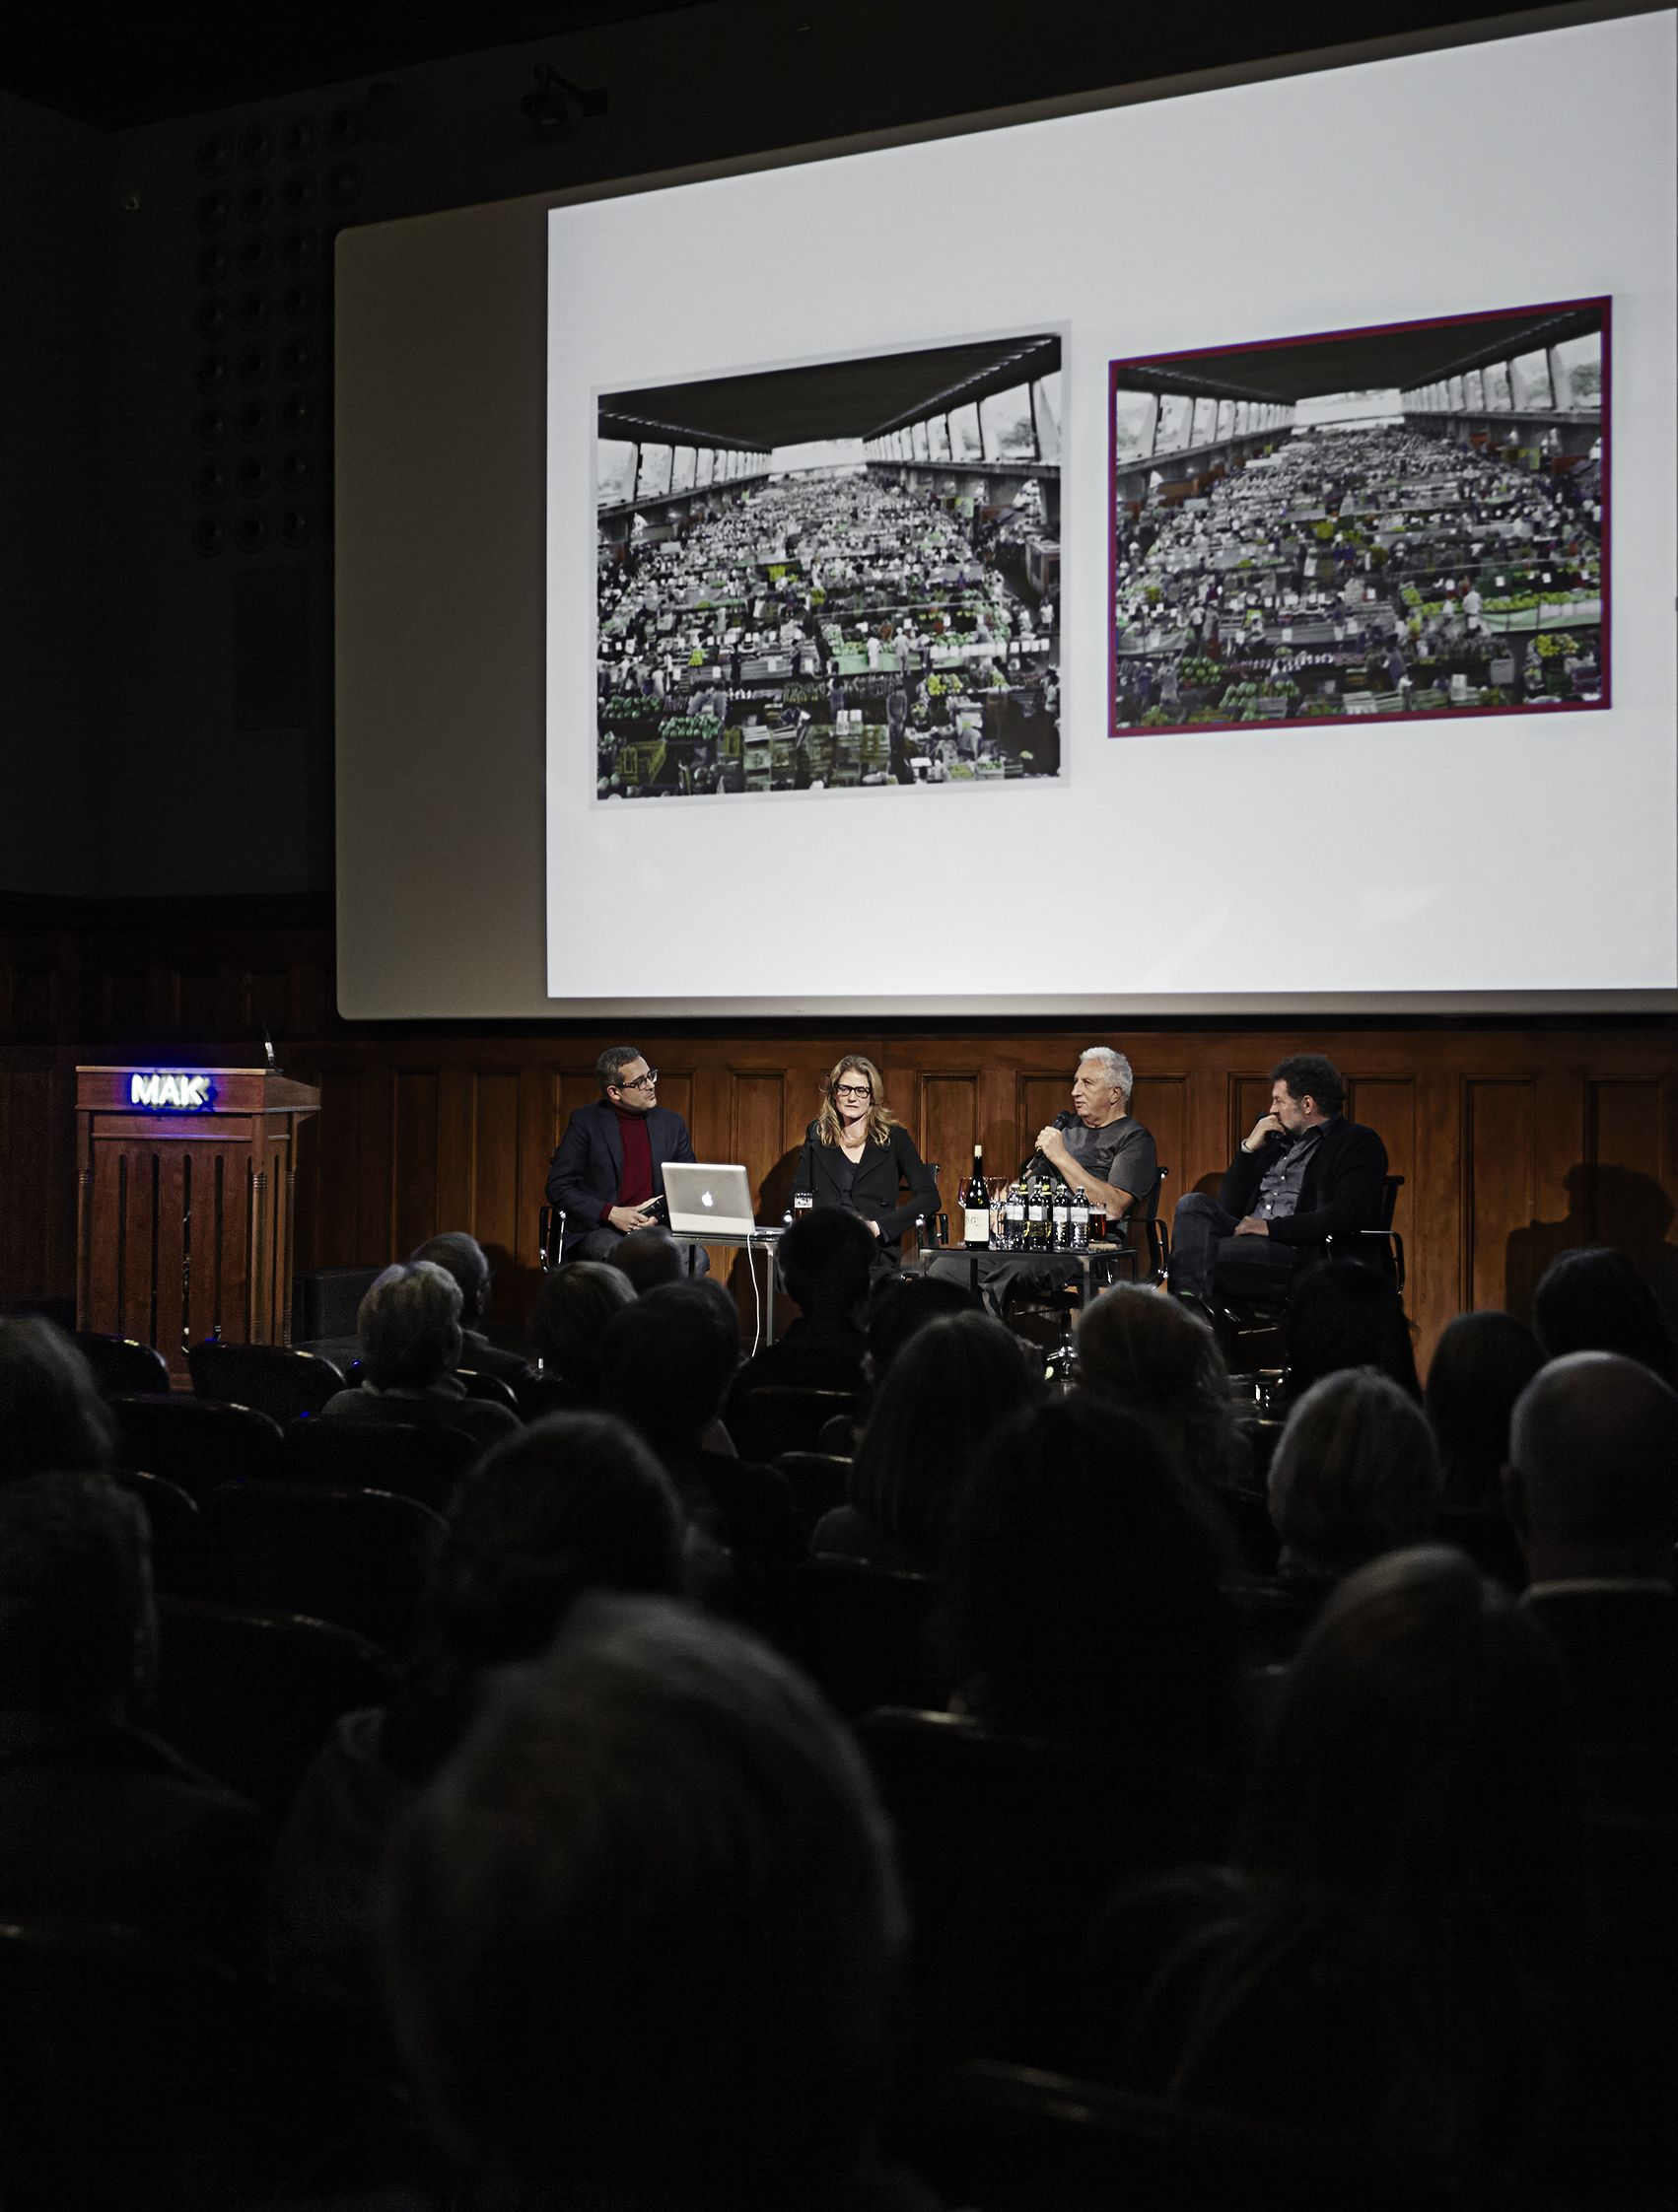 Marc O'Polo Talk: Iconic photographers Mona Kuhn & Massimo Vitali live on stage discussing photography between art & commerce. #mak_museum @monakuhnstudio #marcopolo